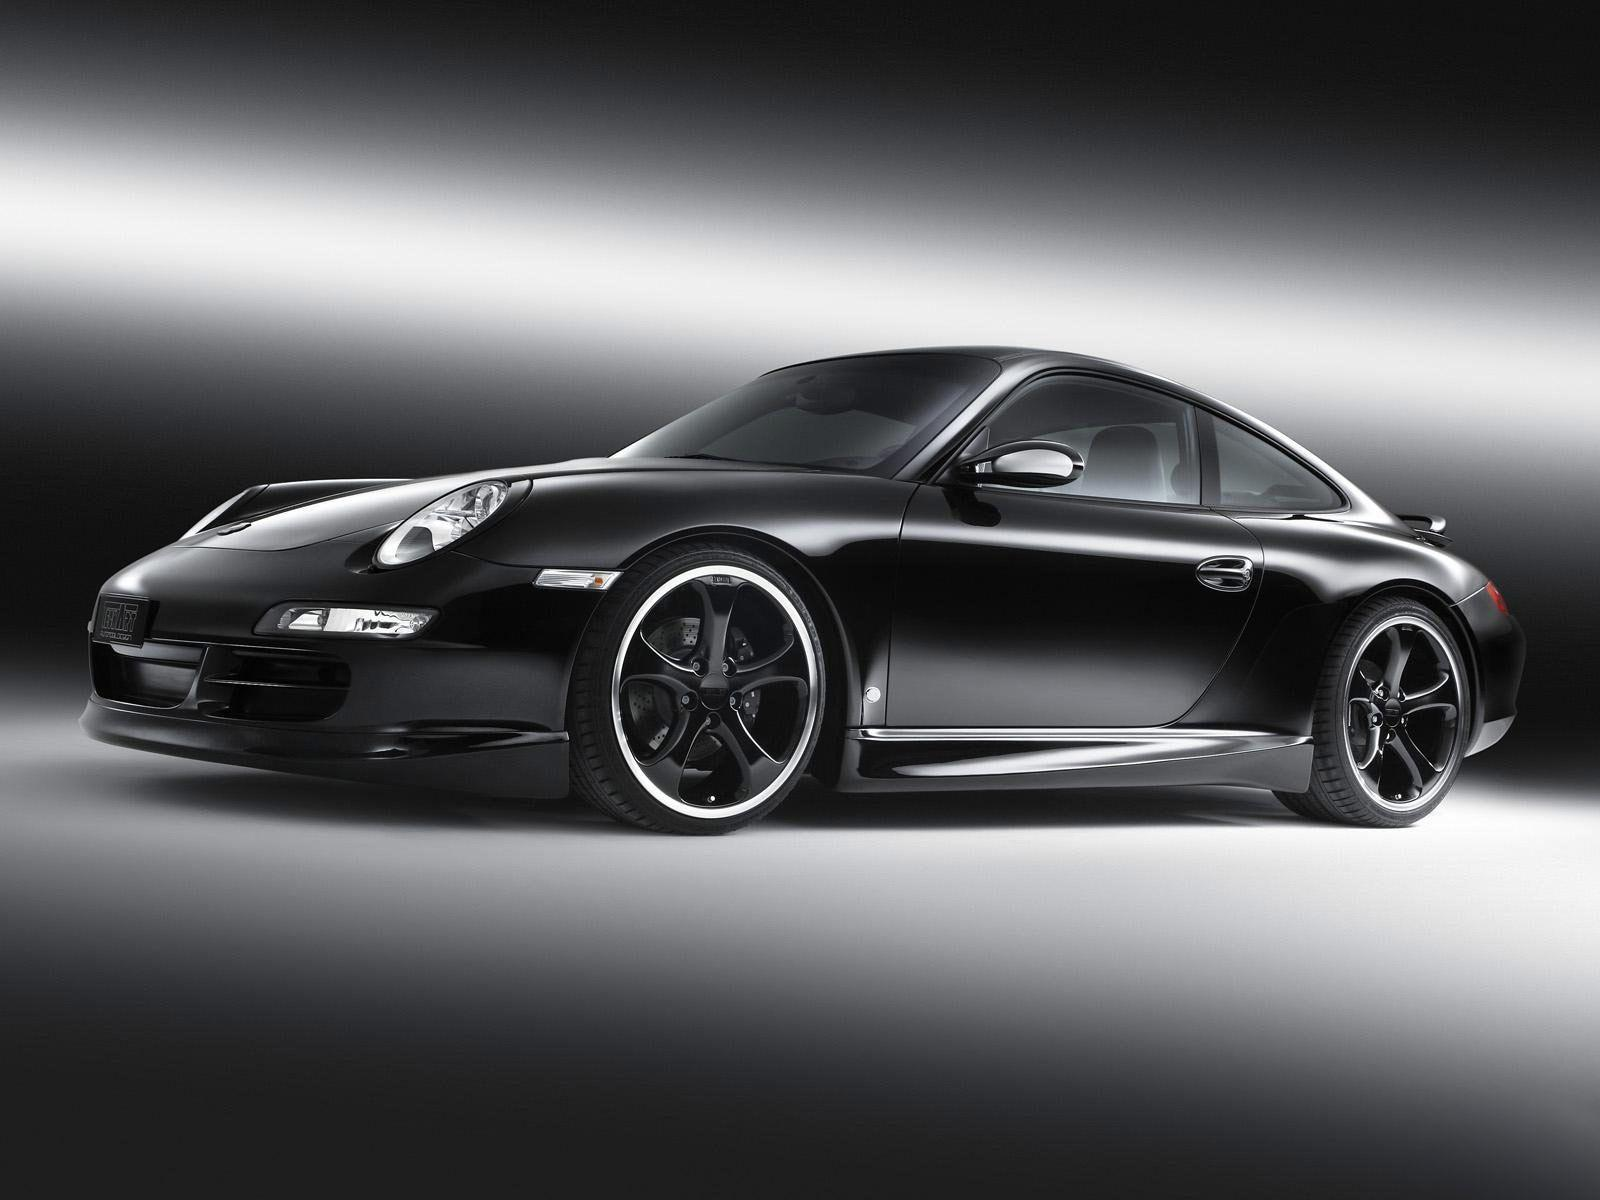 Cars and only Cars: porsche 911 wallpaper